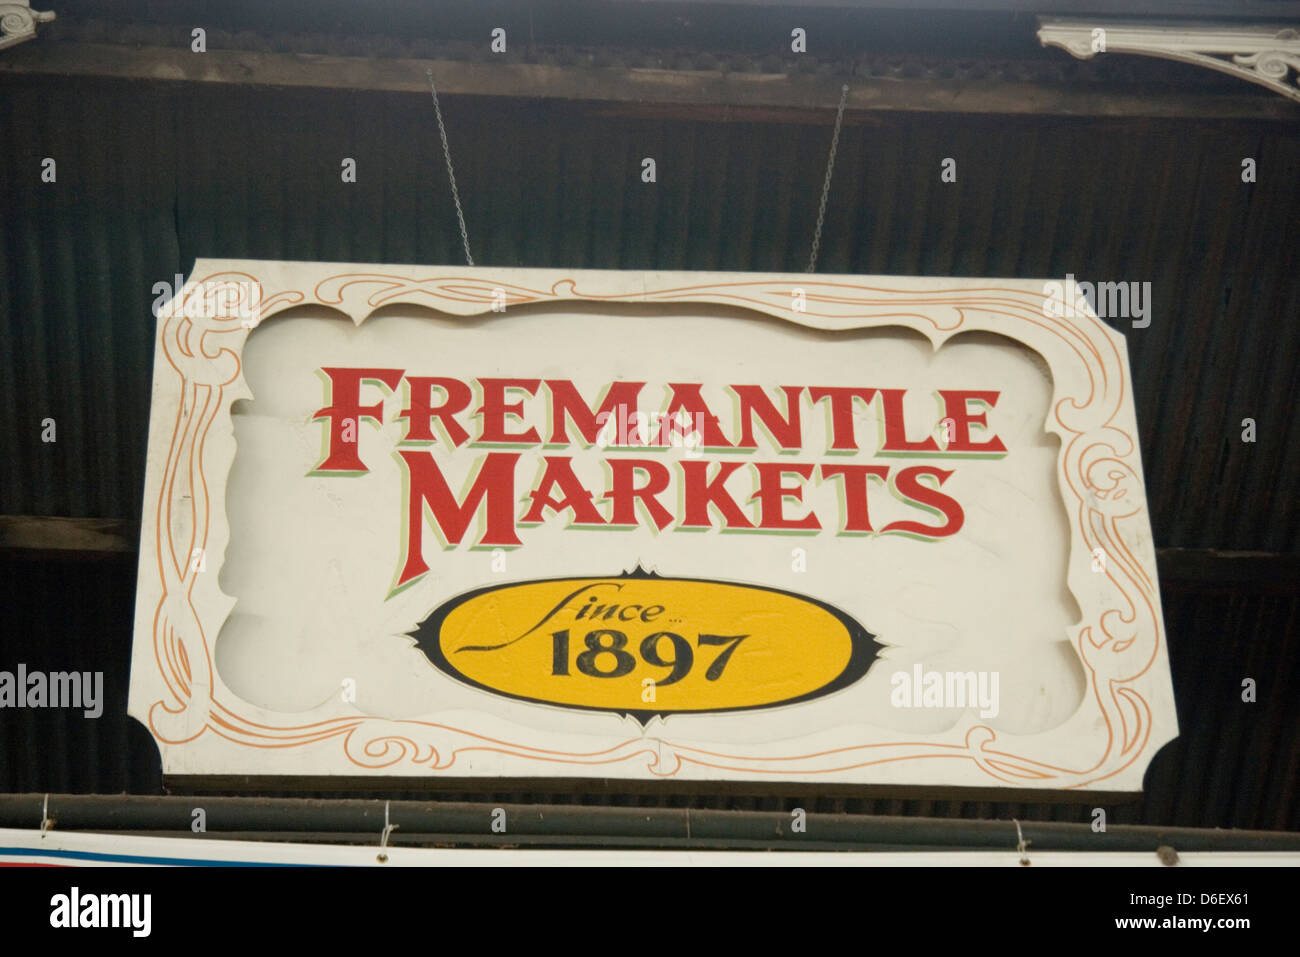 Fremantle Markets in Fremantle, Western Australia - Stock Image